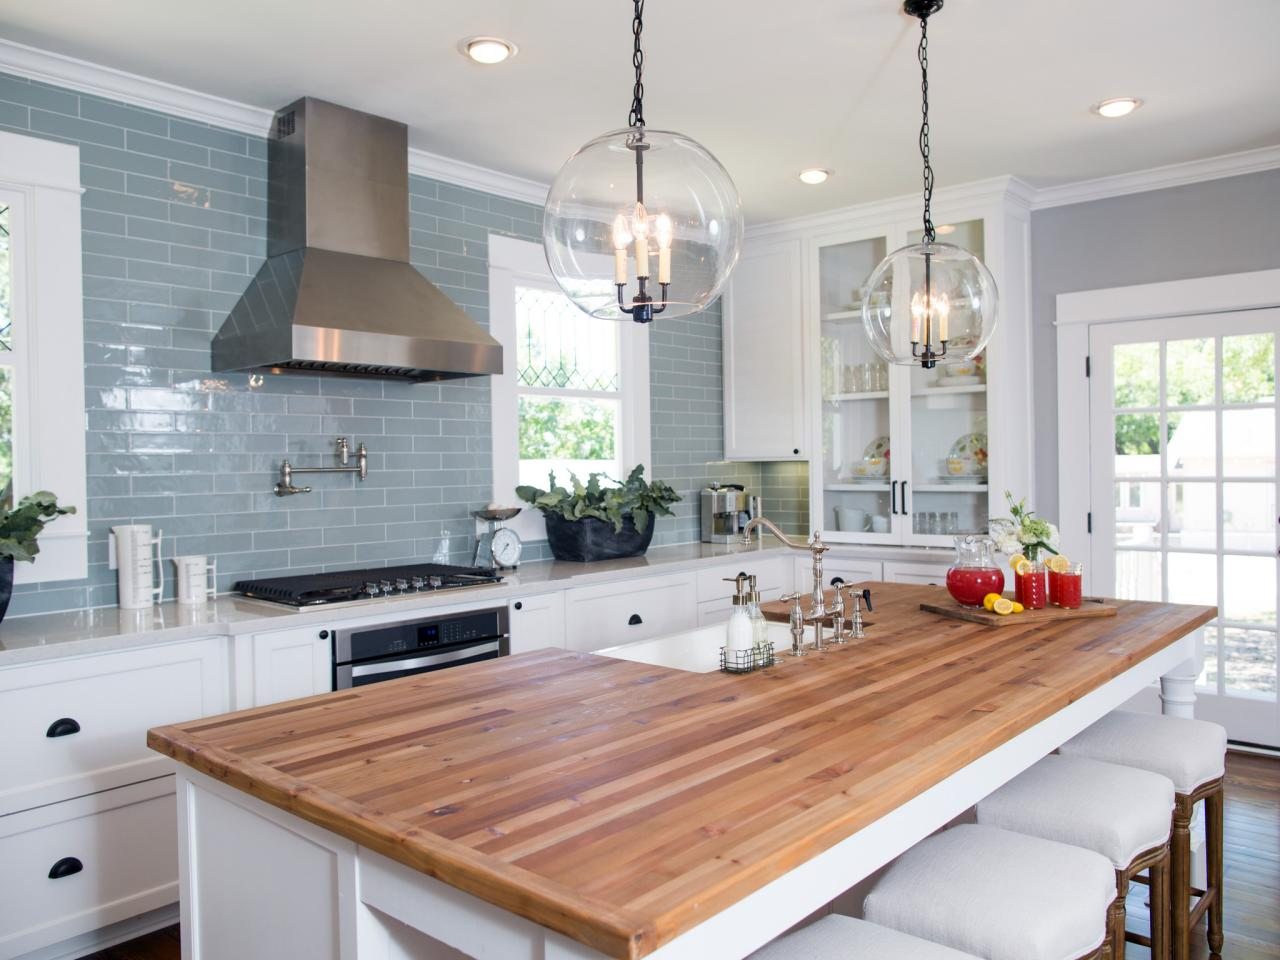 Before and after kitchen photos from hgtv 39 s fixer upper for Kitchen ideas joanna gaines